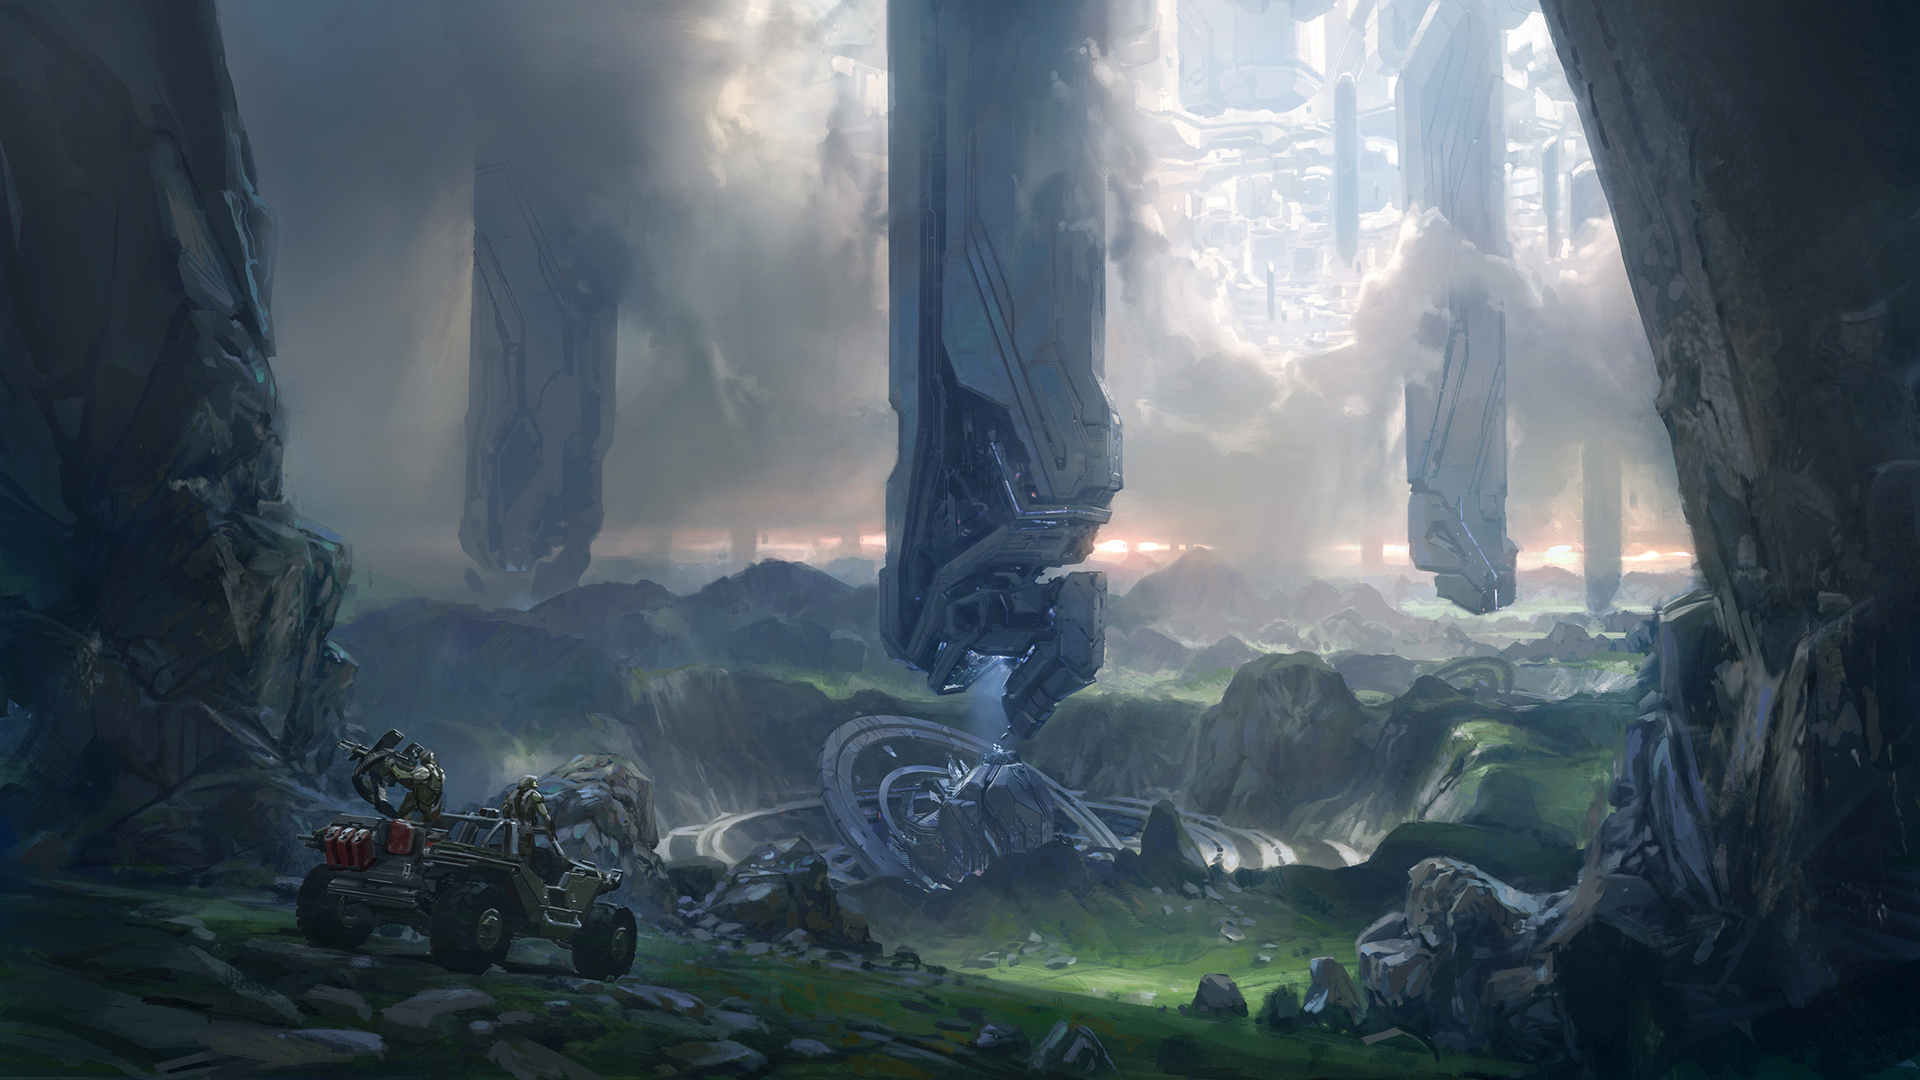 Nice Images Collection: Halo 4 Desktop Wallpapers